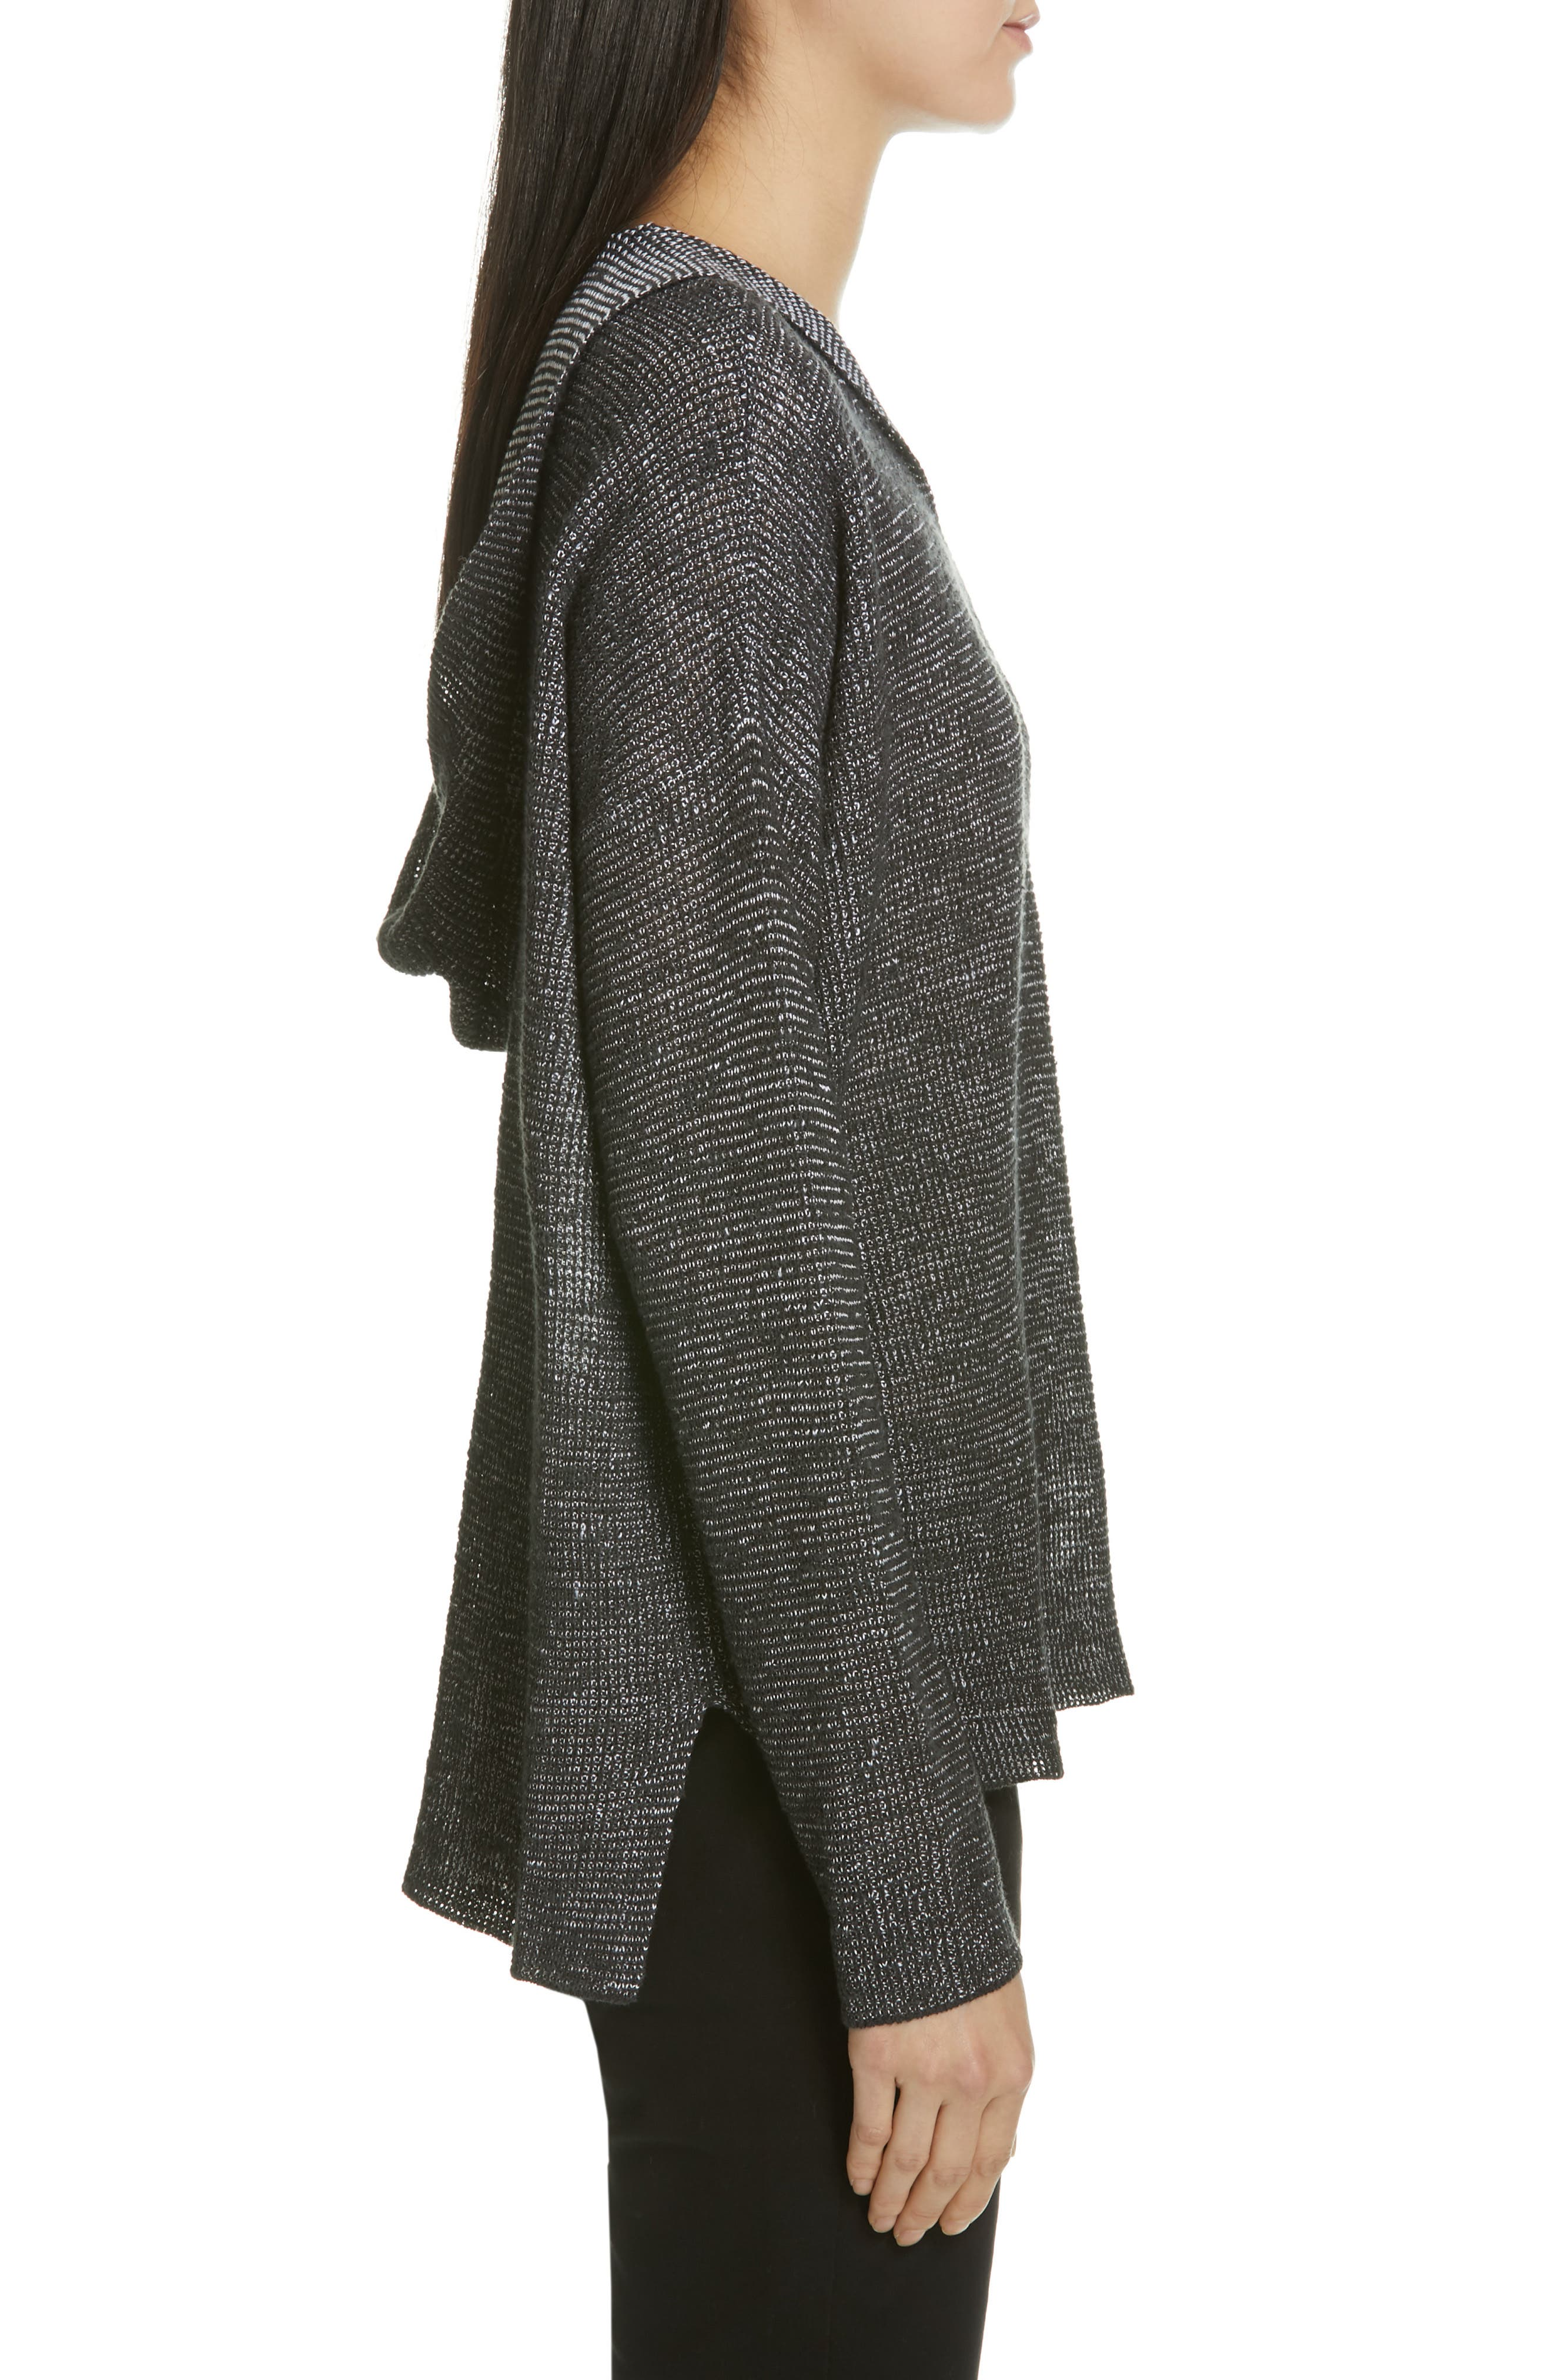 EILEEN FISHER, Organic Linen & Cotton Boxy Hooded Top, Alternate thumbnail 3, color, CHARCOAL